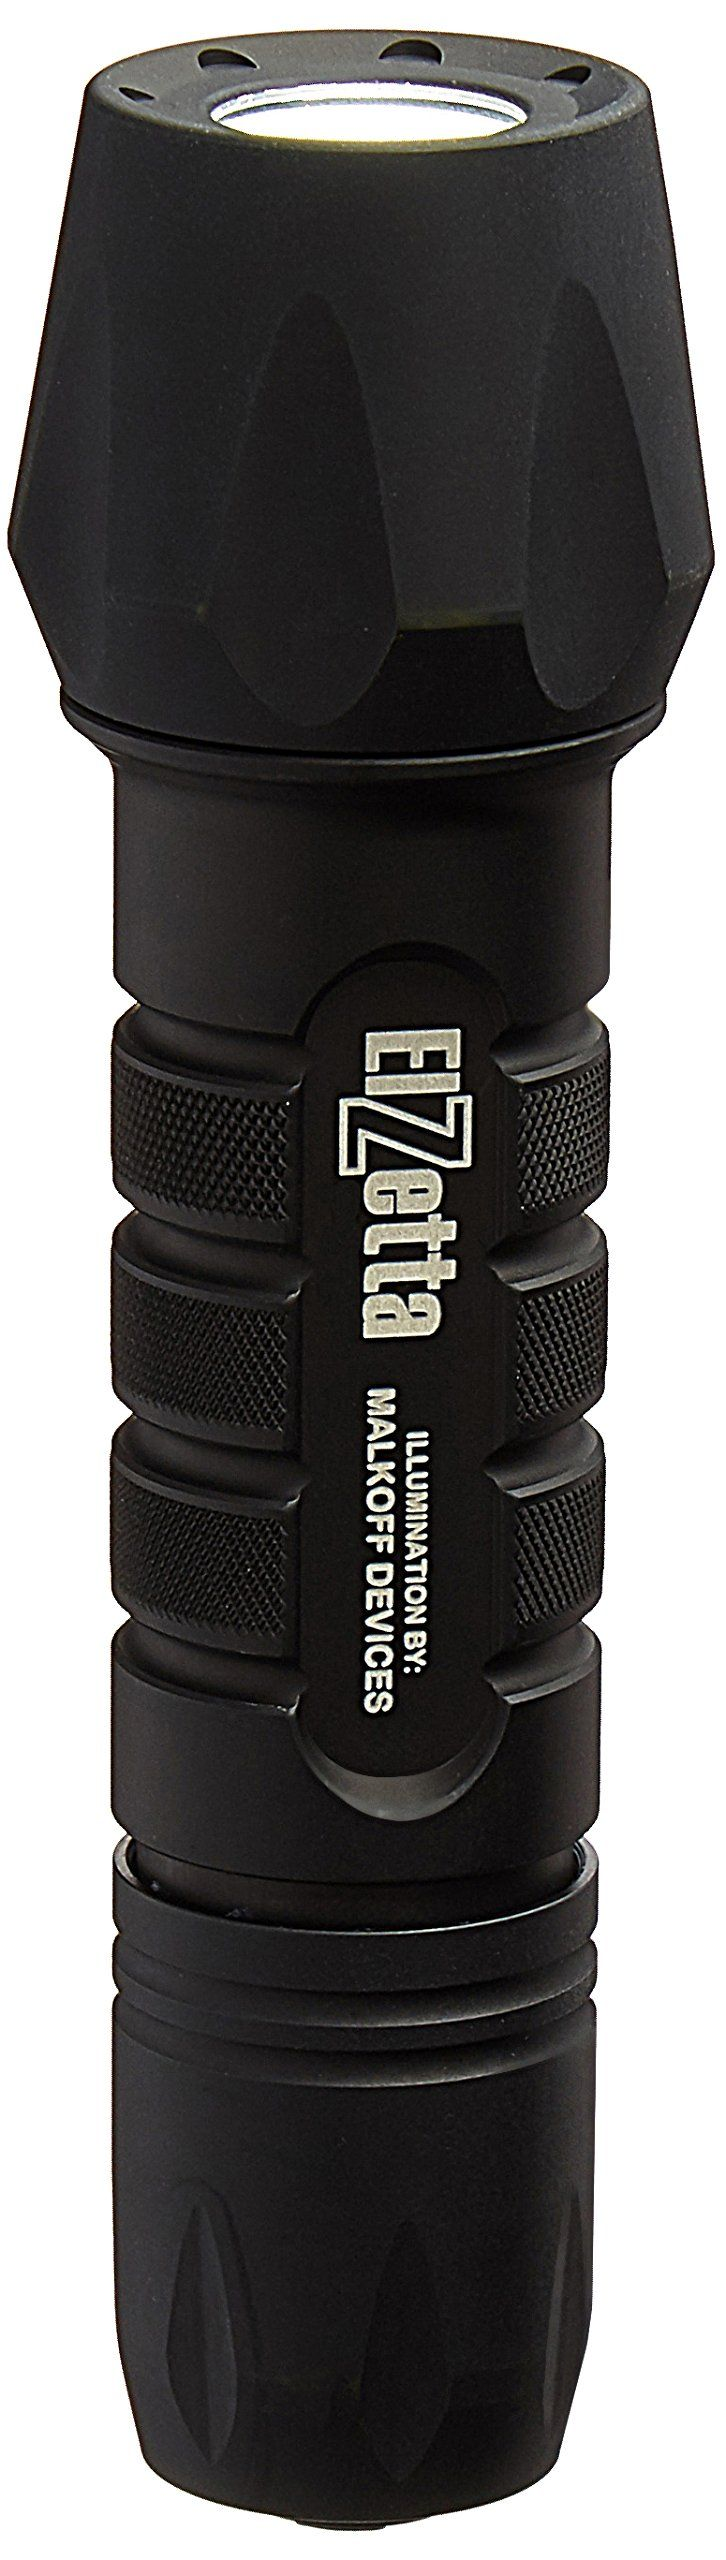 Elzetta ZFL-M60-SS2C Tactical Weapon LED Flashlight with Standard Bezel, M60, 2-Cell, Click Switch. Unsurpassed Ruggedness & Durability. 235 Lumens Worth of Blinding Bright Light. Anti-Roll Bezel. Extremely Compact. Standard Bezel.